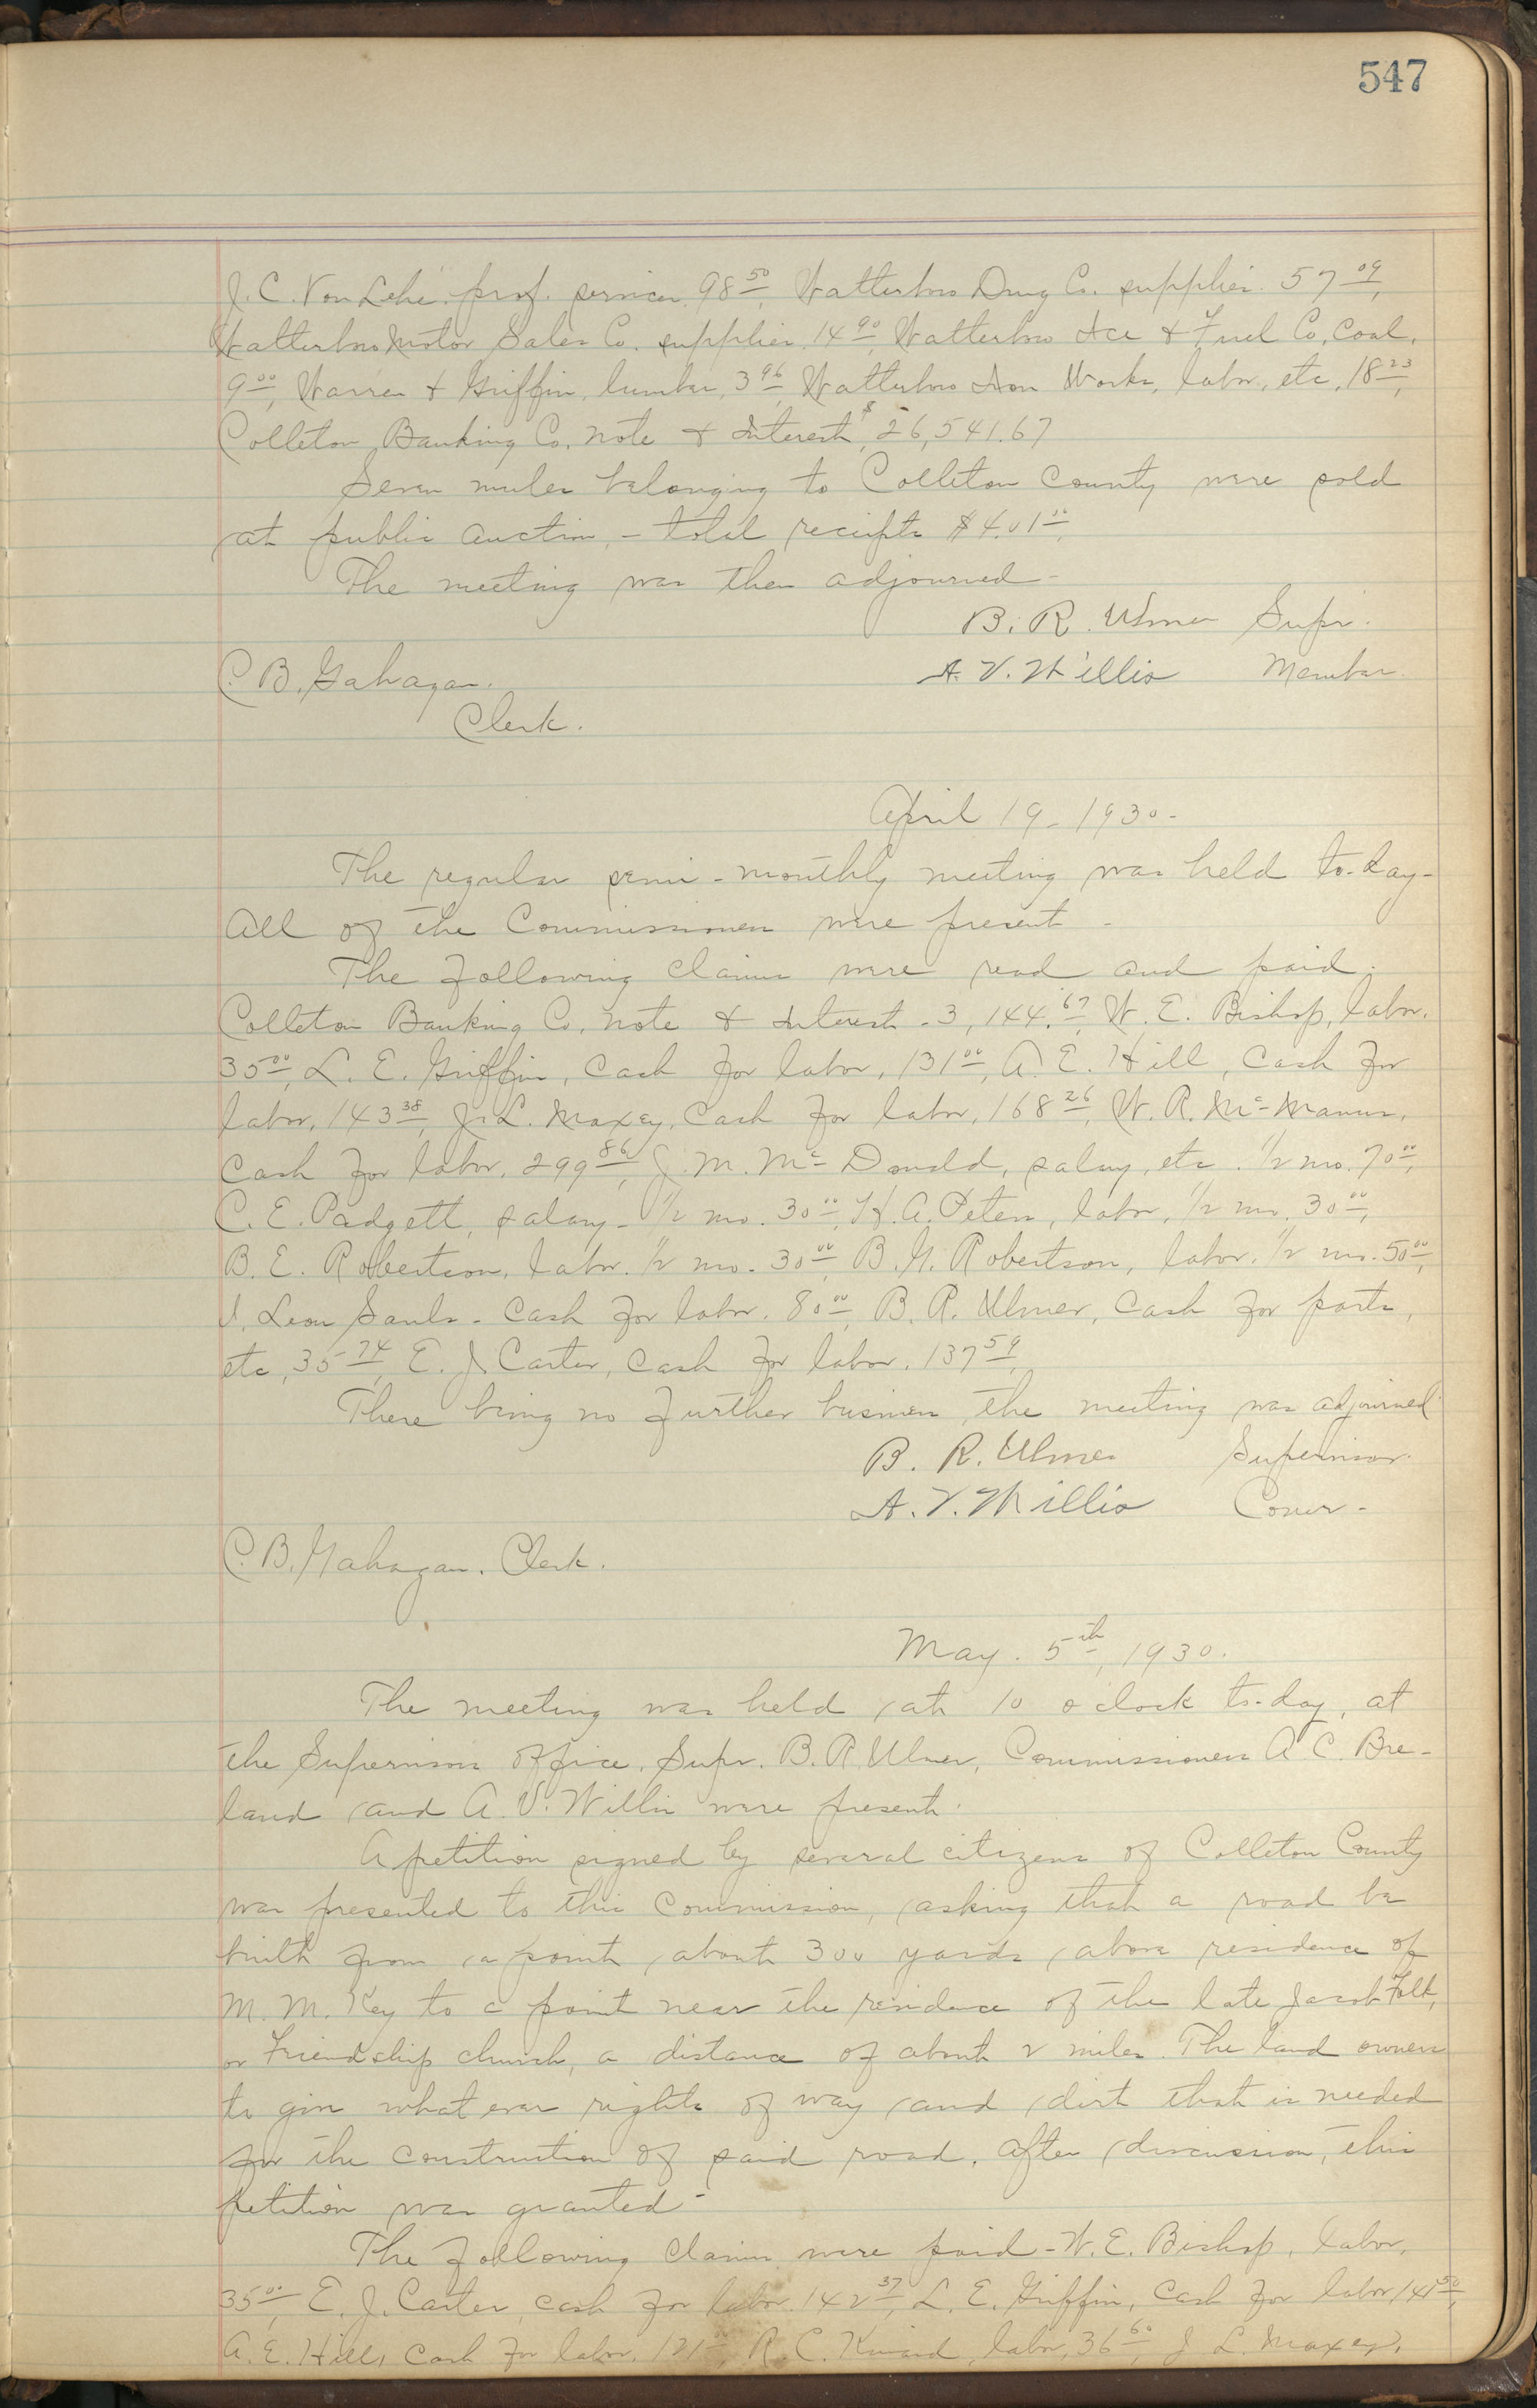 Colleton County Highway Commission Ledger, Page 547